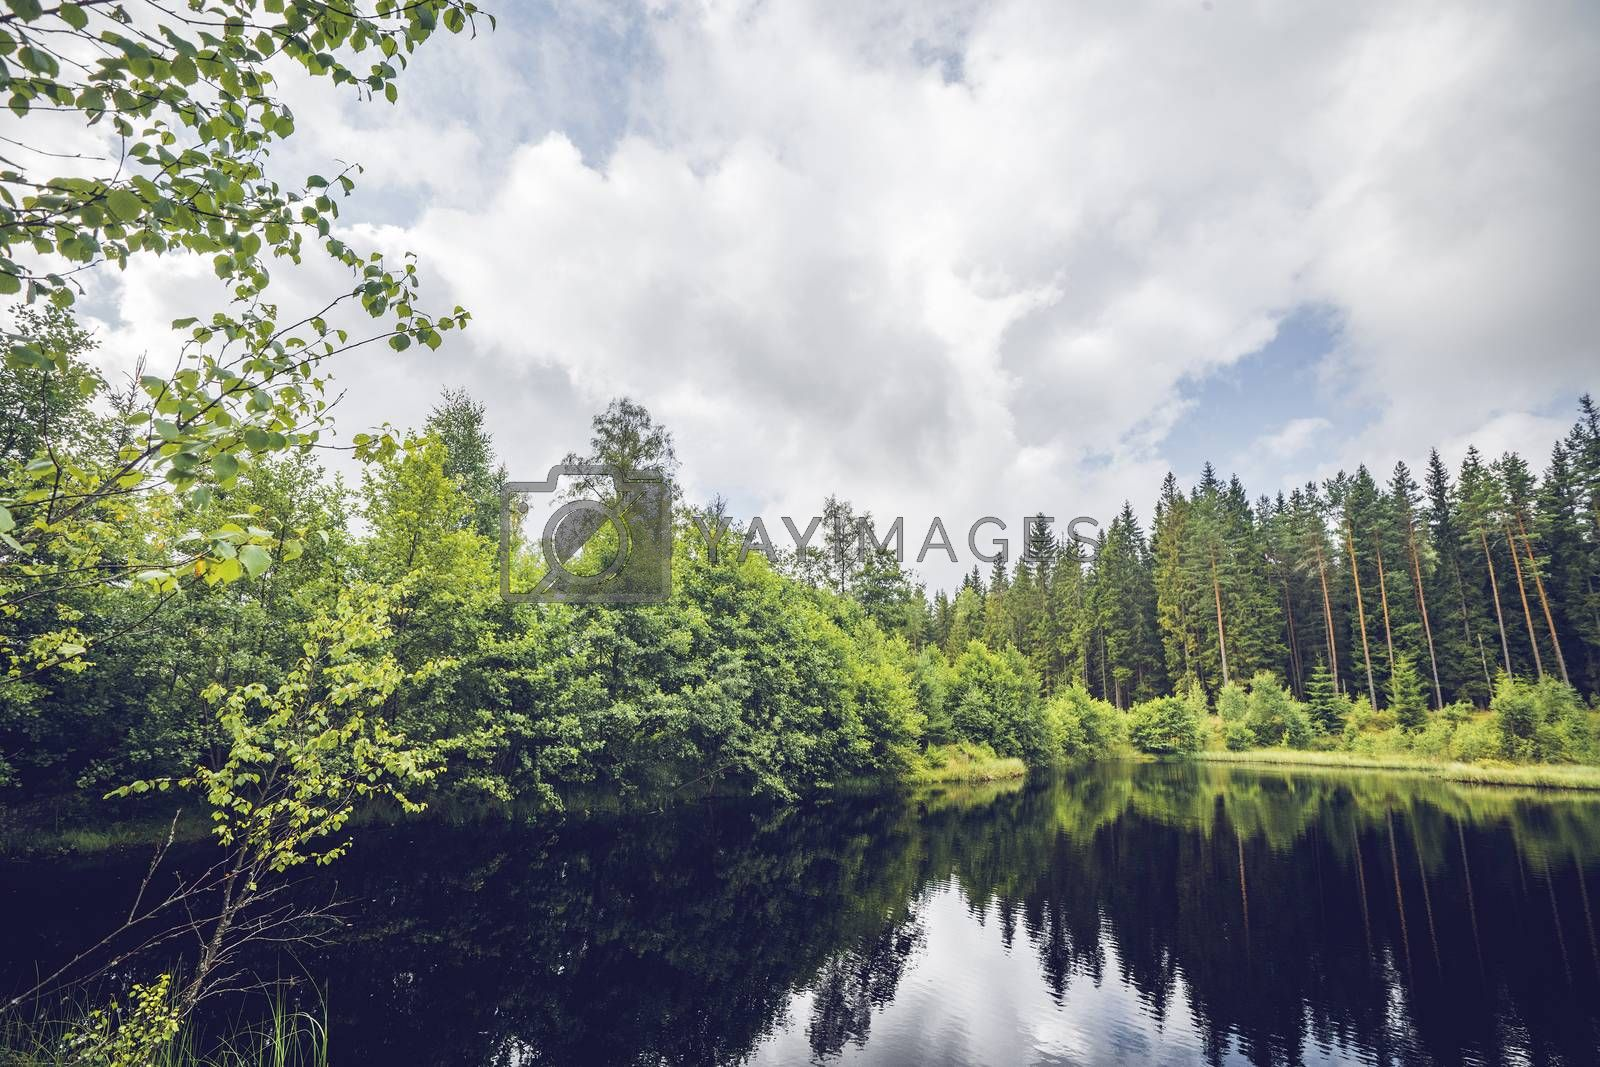 Dark lake in a forest with green trees reflecting in the water in the summer